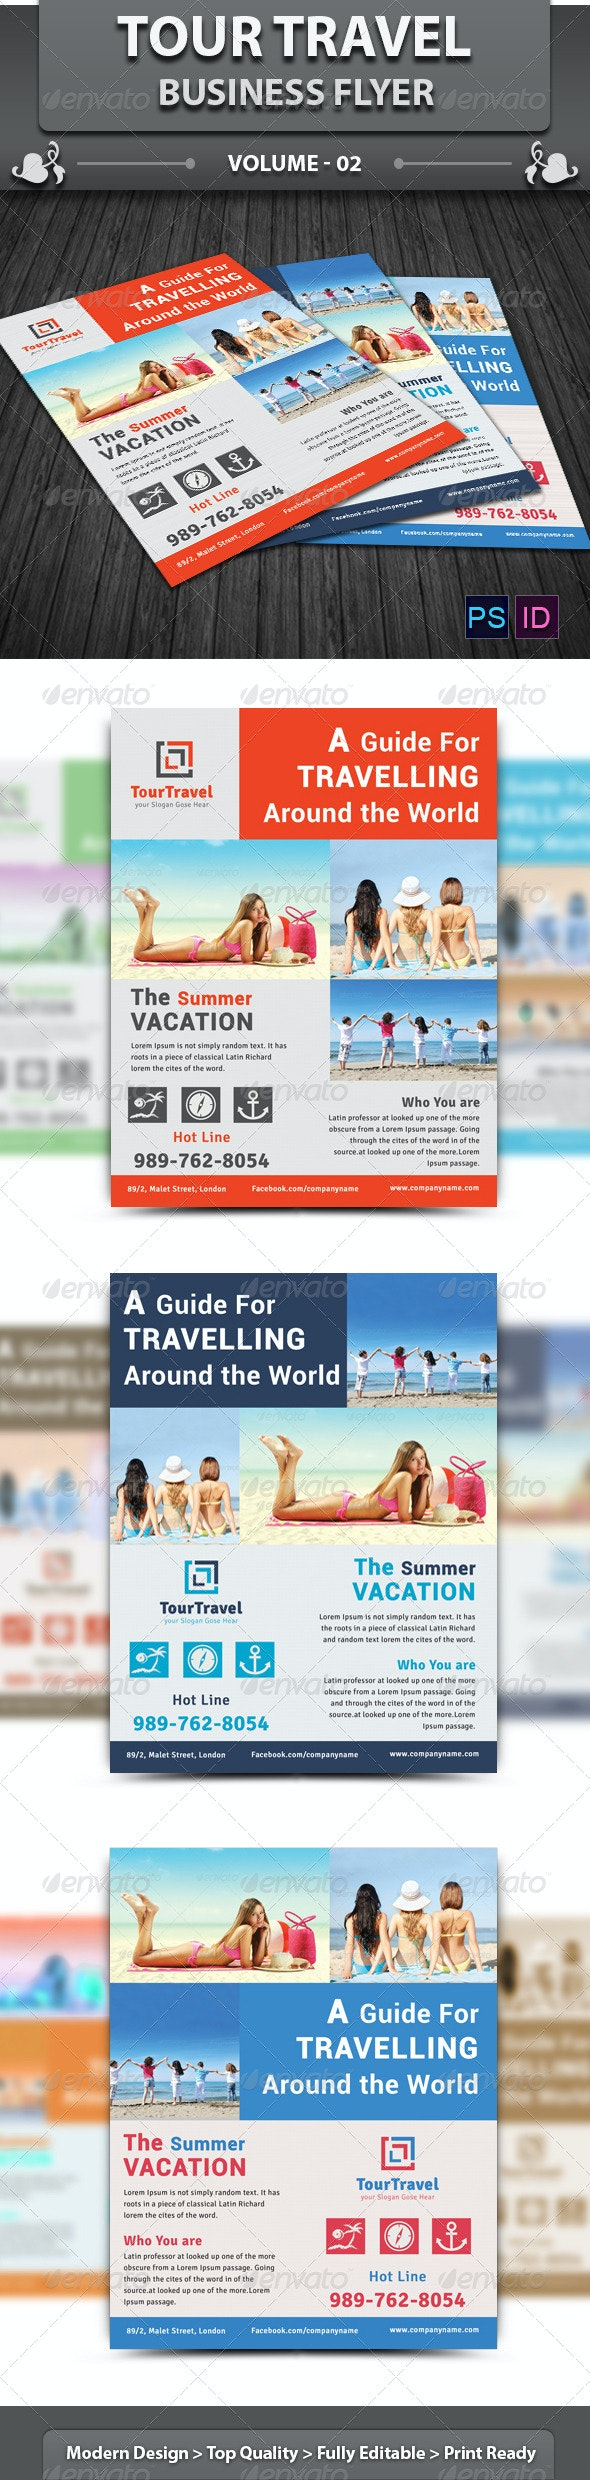 Travel / Tourism Business Flyer | Volume 2 - Corporate Flyers